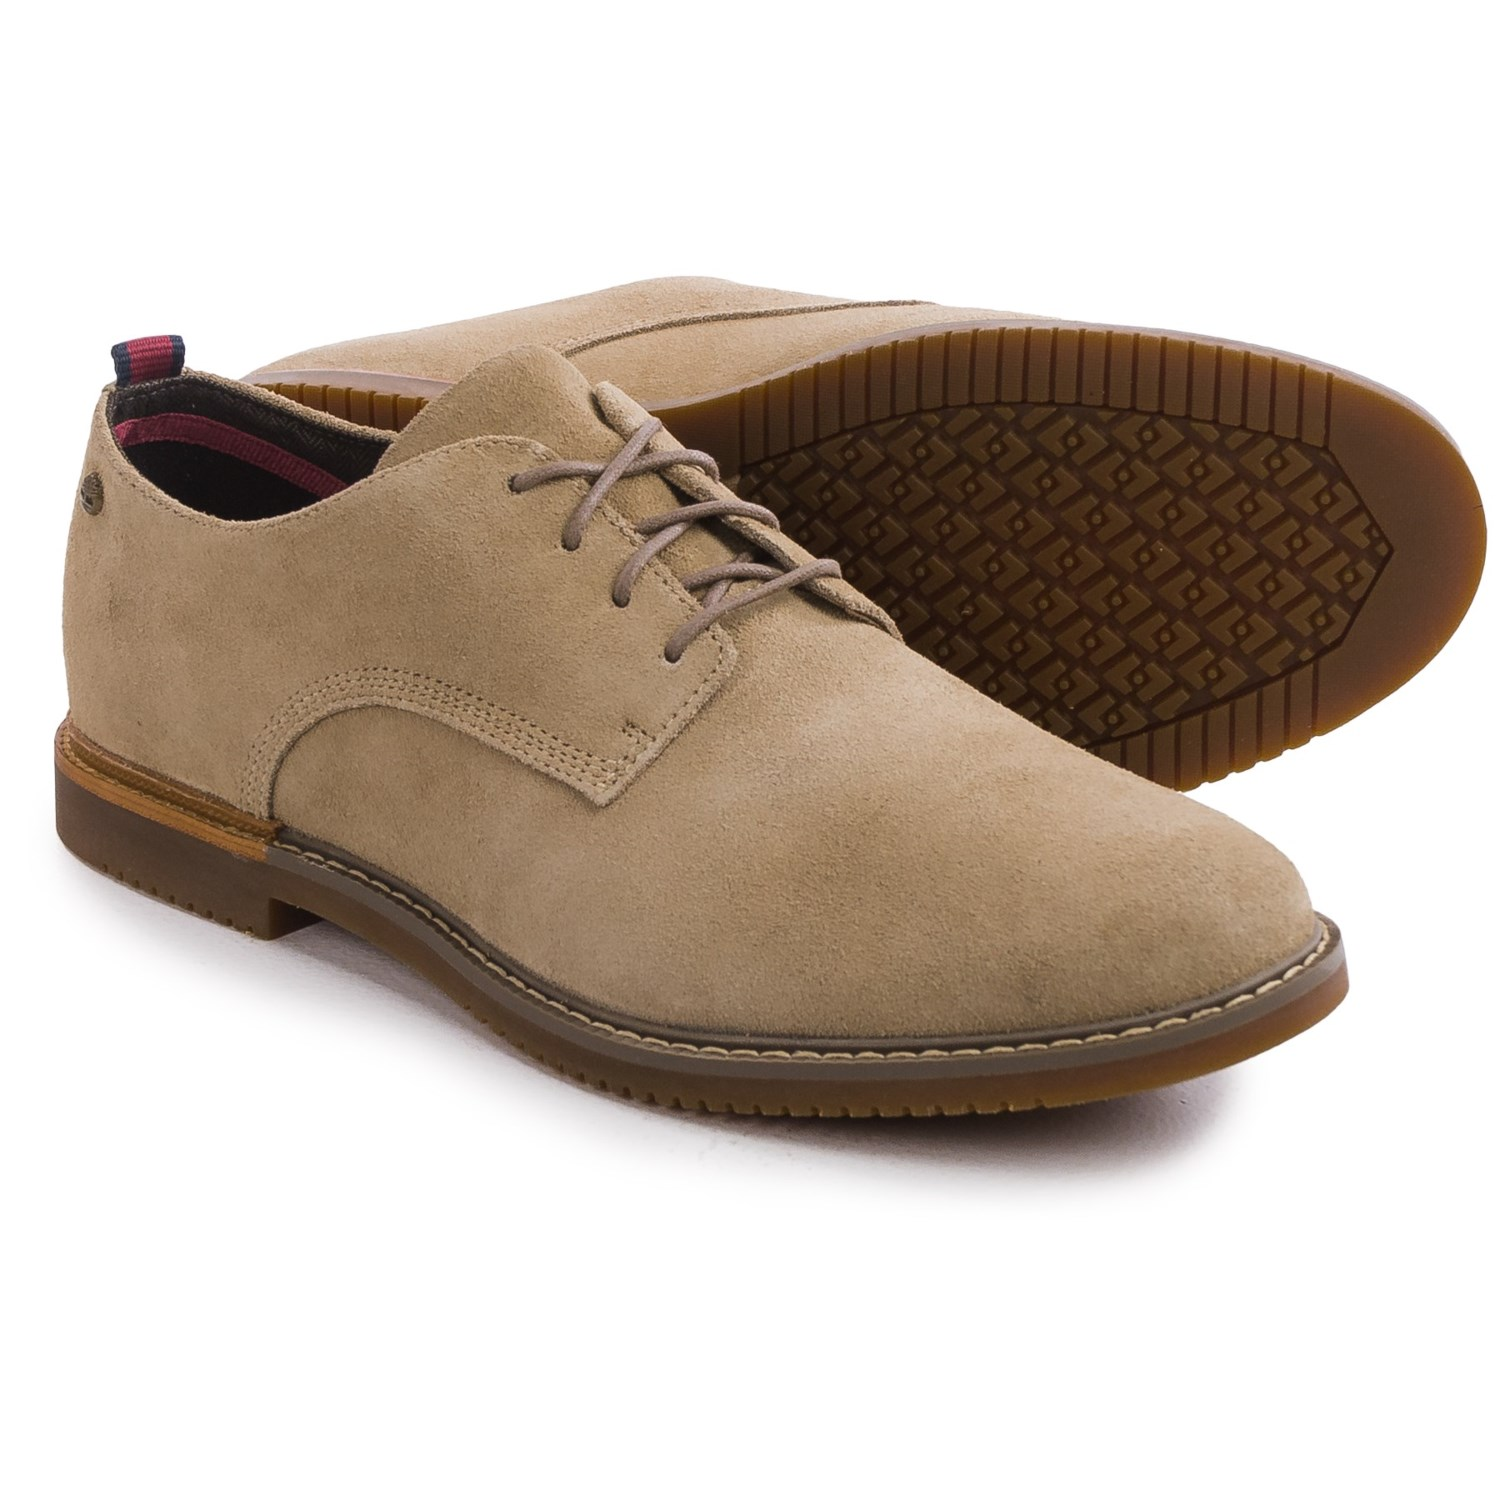 Men's Oxfords from hitmixeoo.gq A sophisticated and elegant shoe style, the men's oxfords from hitmixeoo.gq offer many great choices, perfect for wearing to an important business meeting, out on the town, or to the big dance.